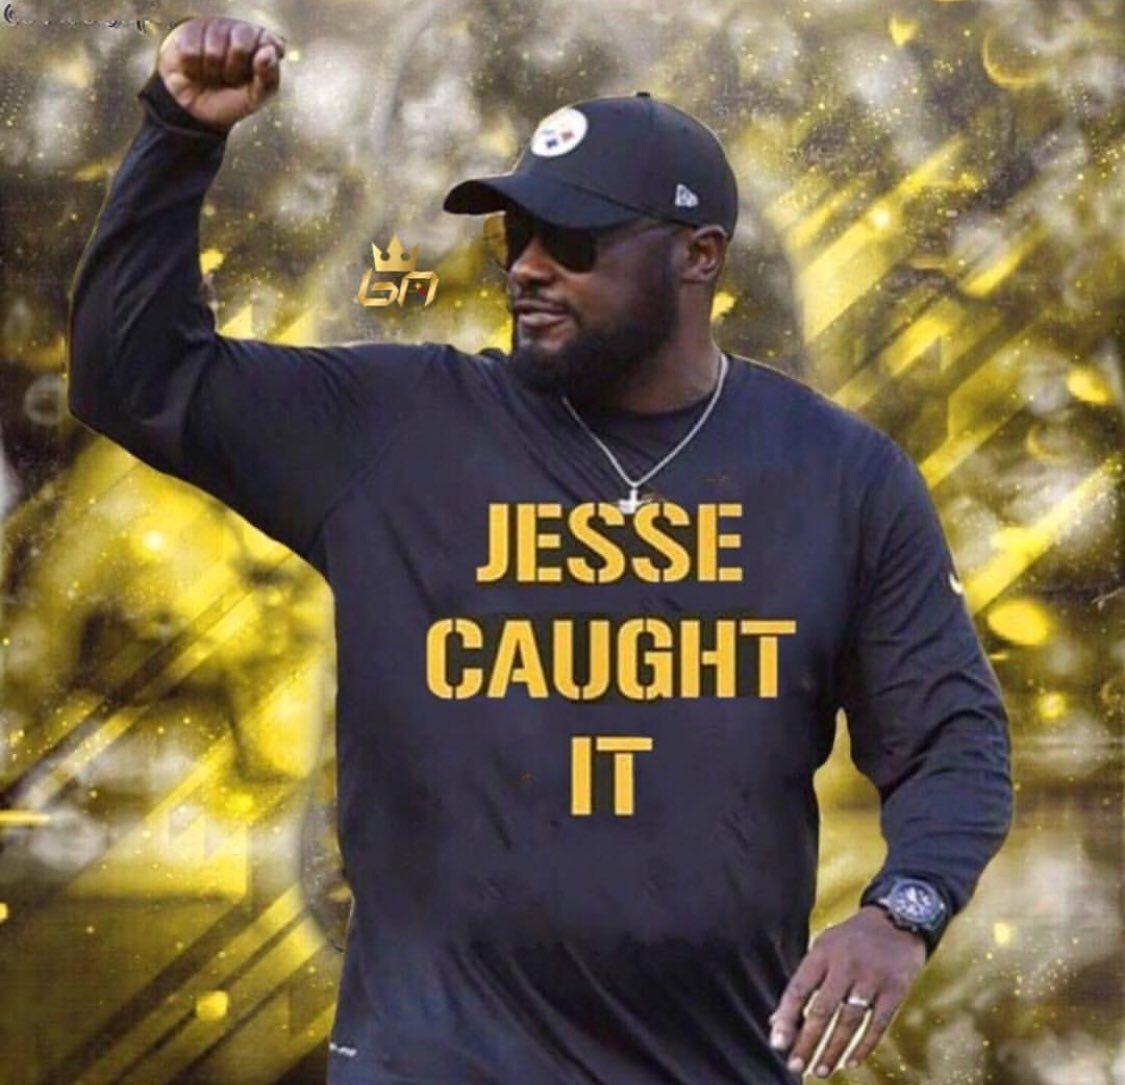 But too late in the game , I'm afraid coach. Still love those Steelers!